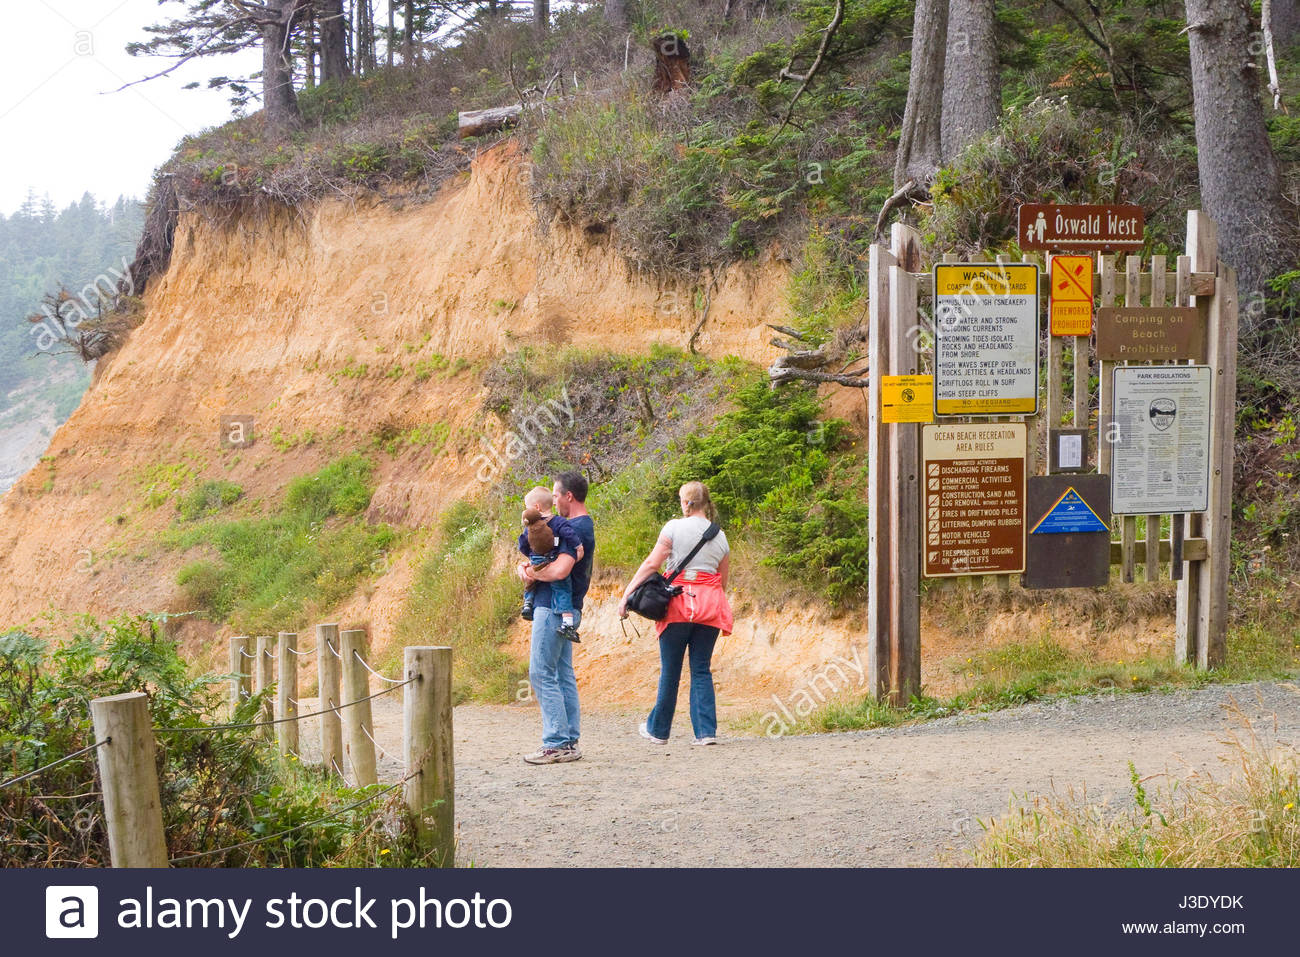 Man carrying small child at Short Sands Beach, Oswald West State Park, Tillamook County, Oregon, USA - Stock Image